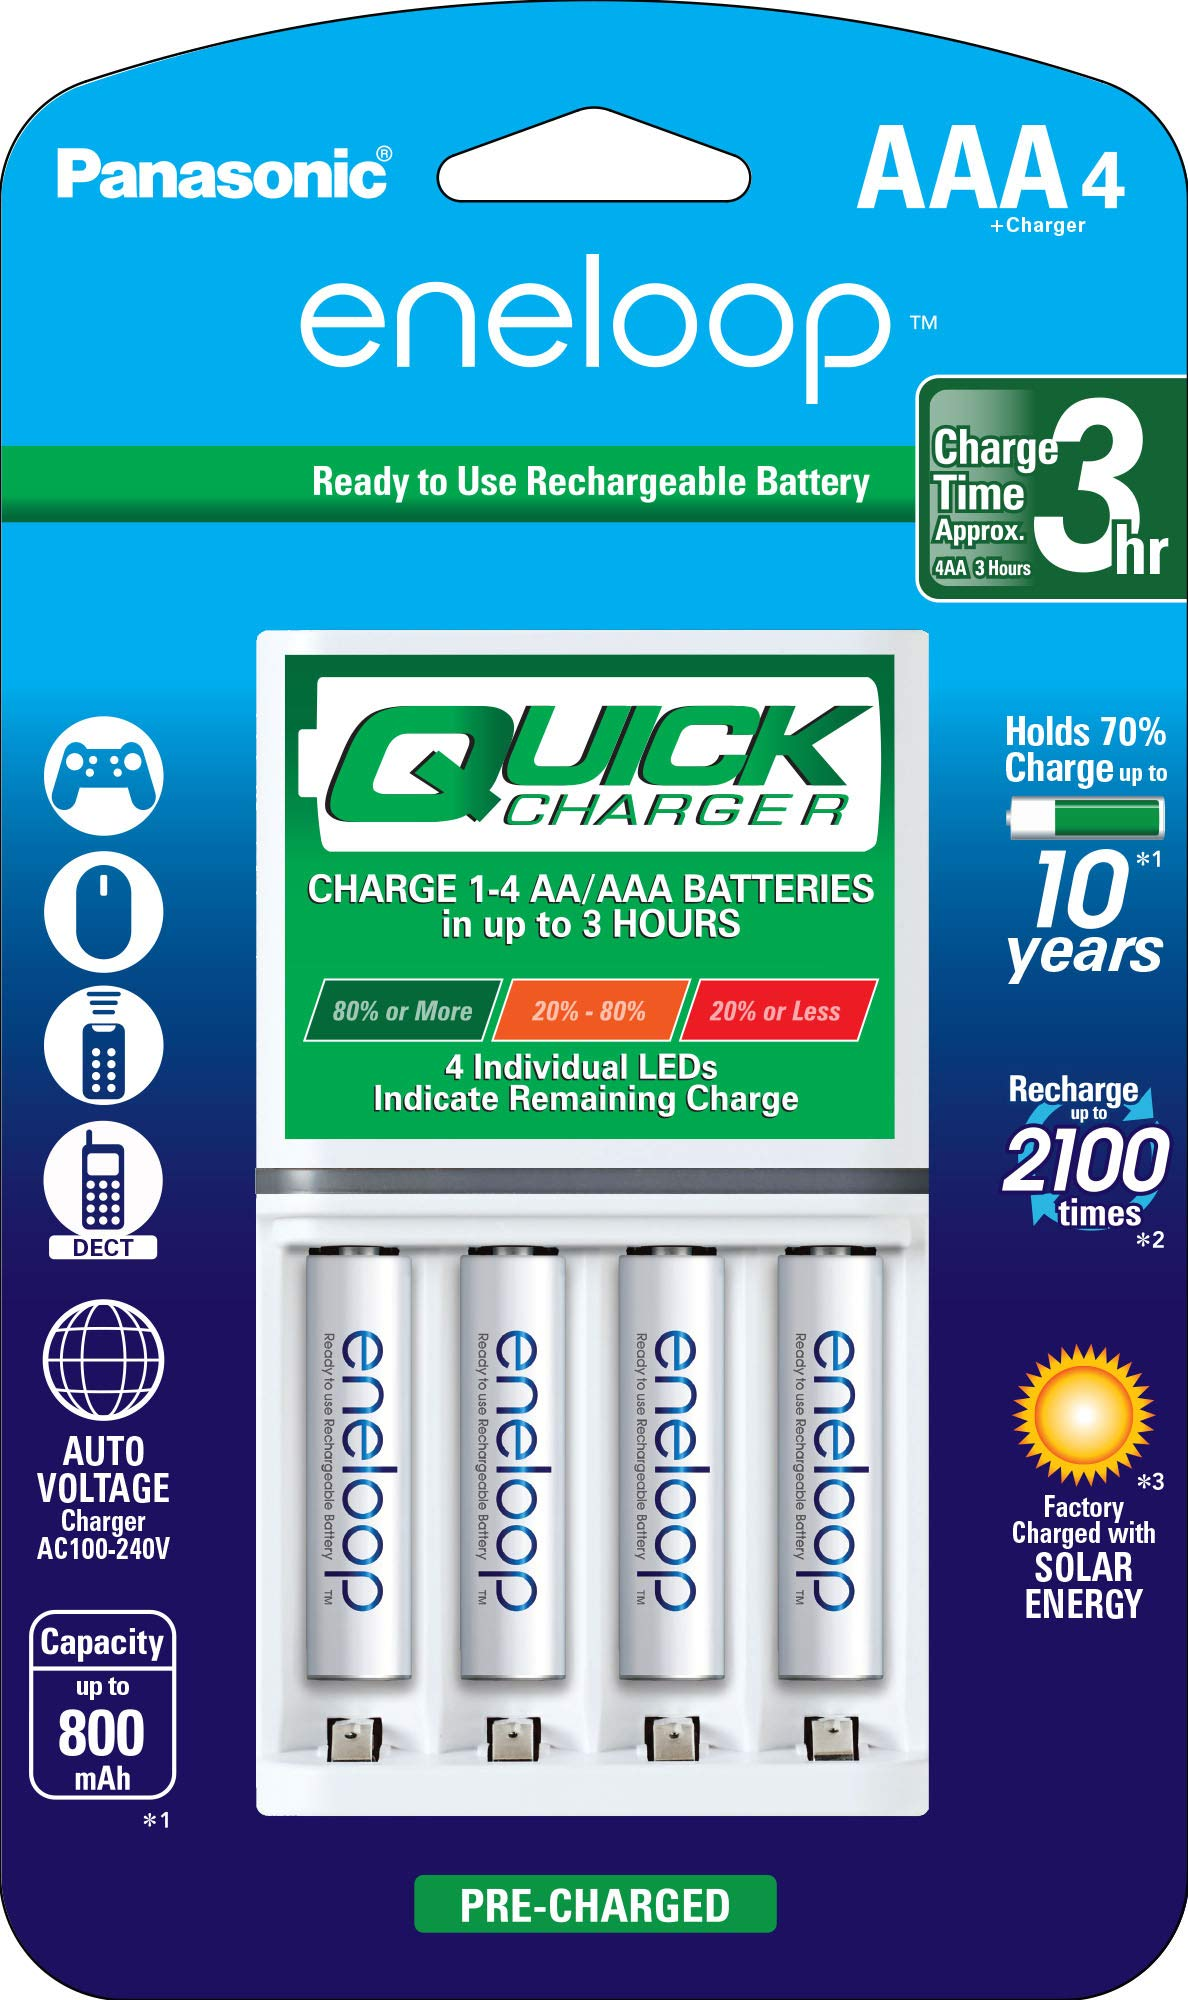 Panasonic K-KJ55M3A4BA Advanced Individual Battery 3 Hour Quick Charger with 4 AAA eneloop Rechargeable Batteries, White